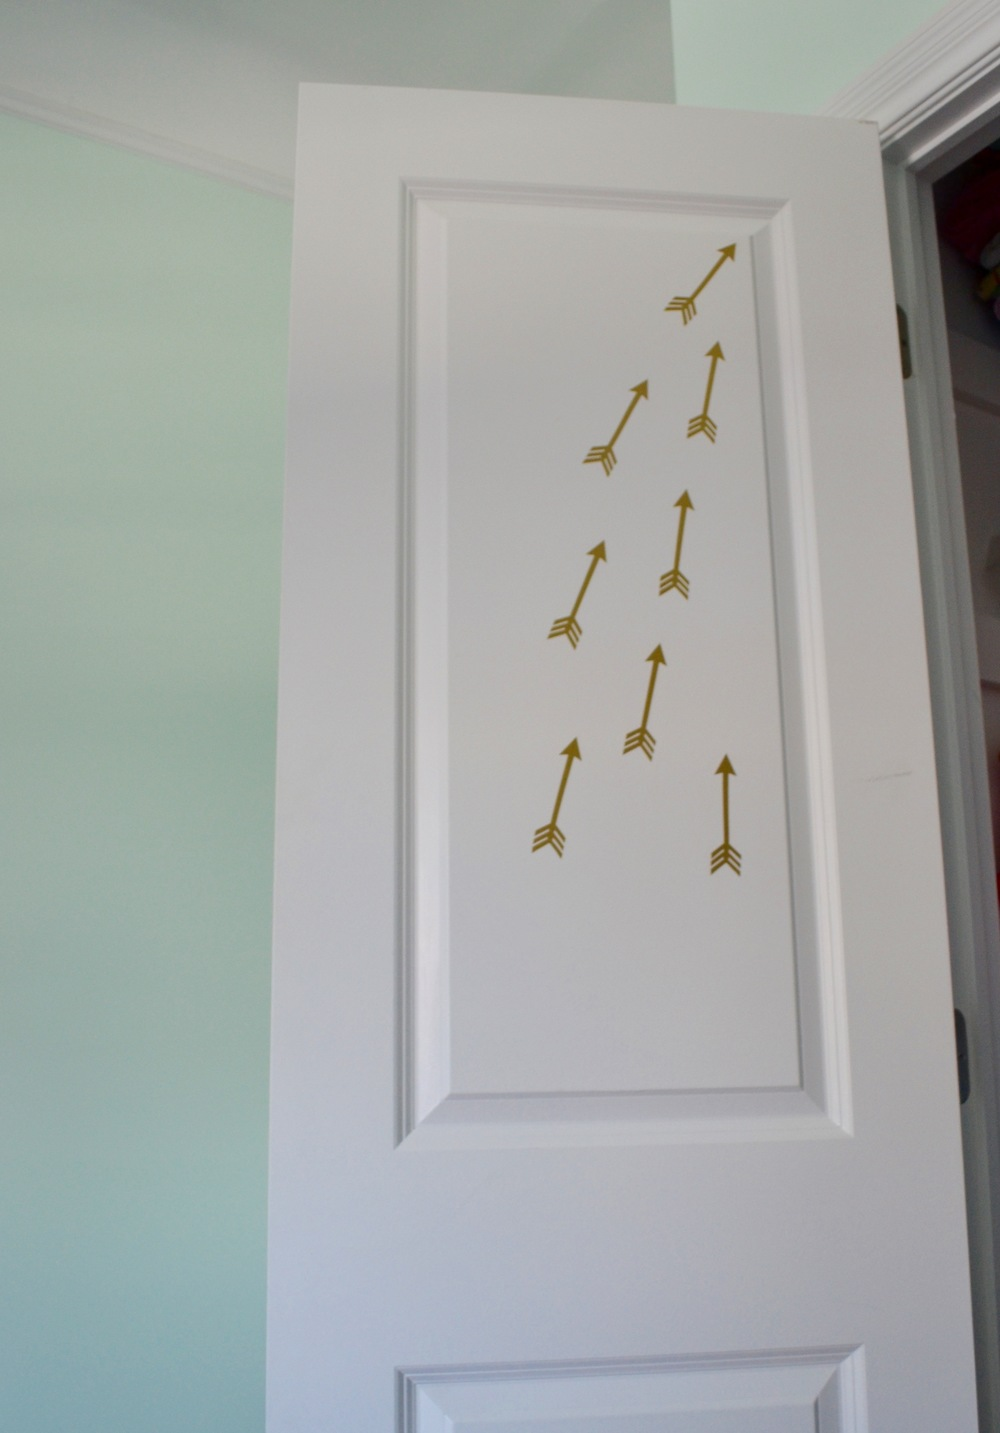 Flying Arrow Decals adorn the inside of the closet door - because, why not?